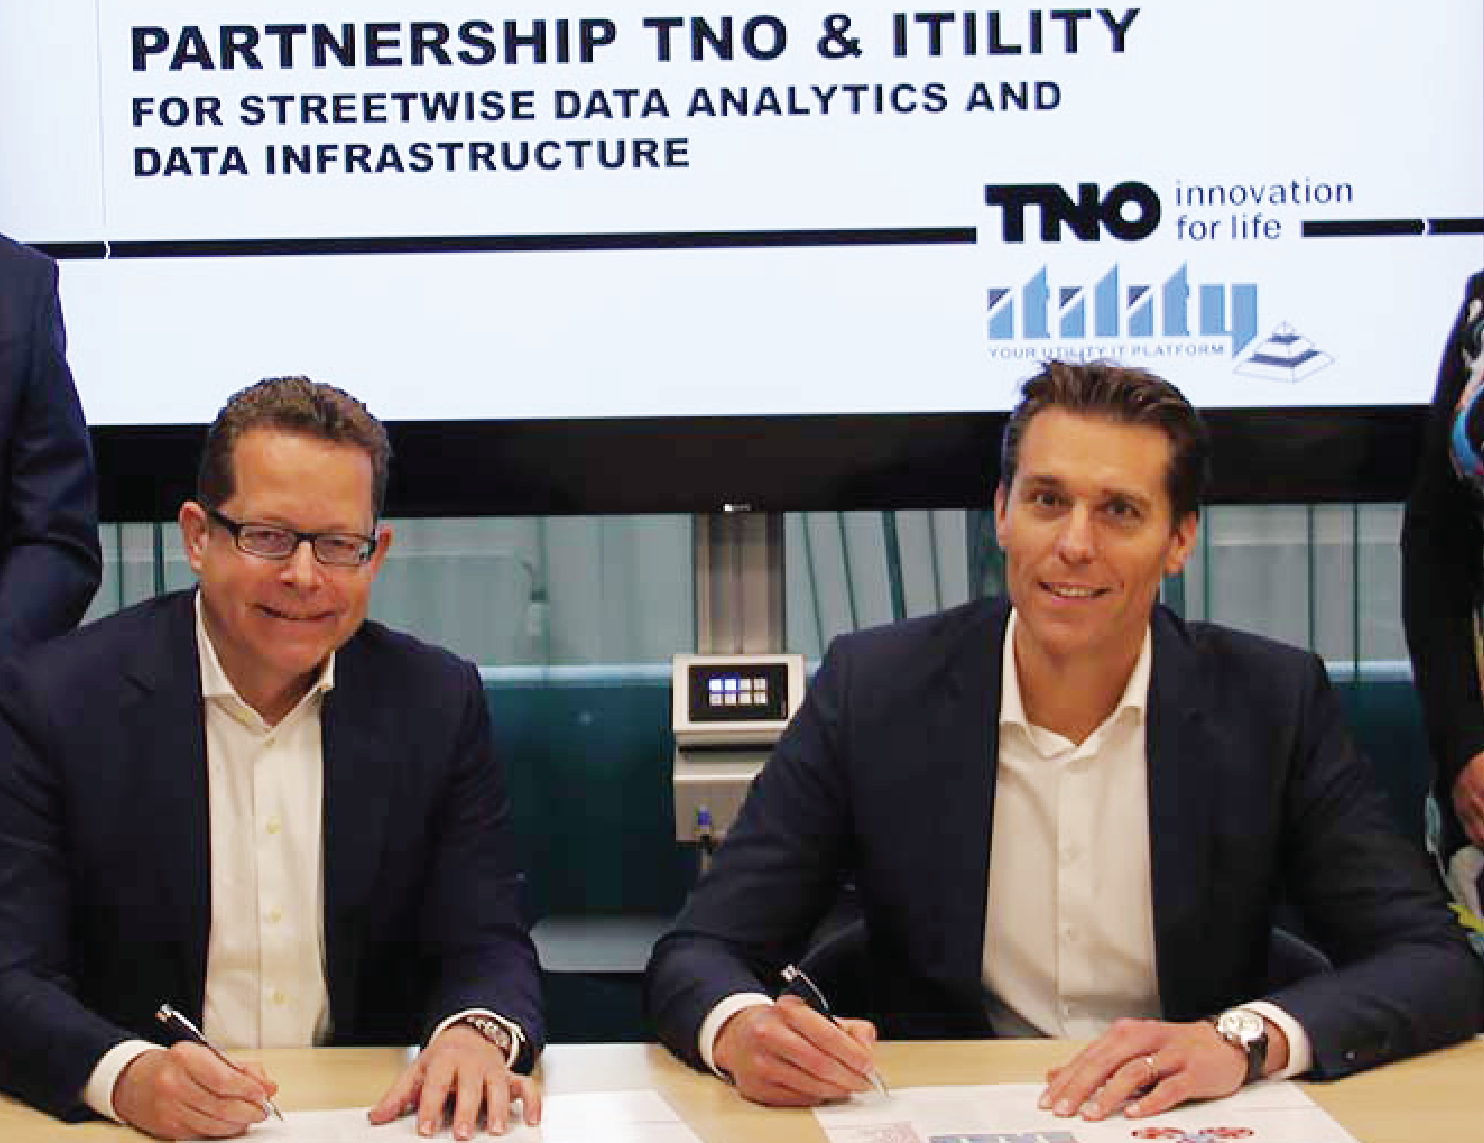 Itility and TNO join forces